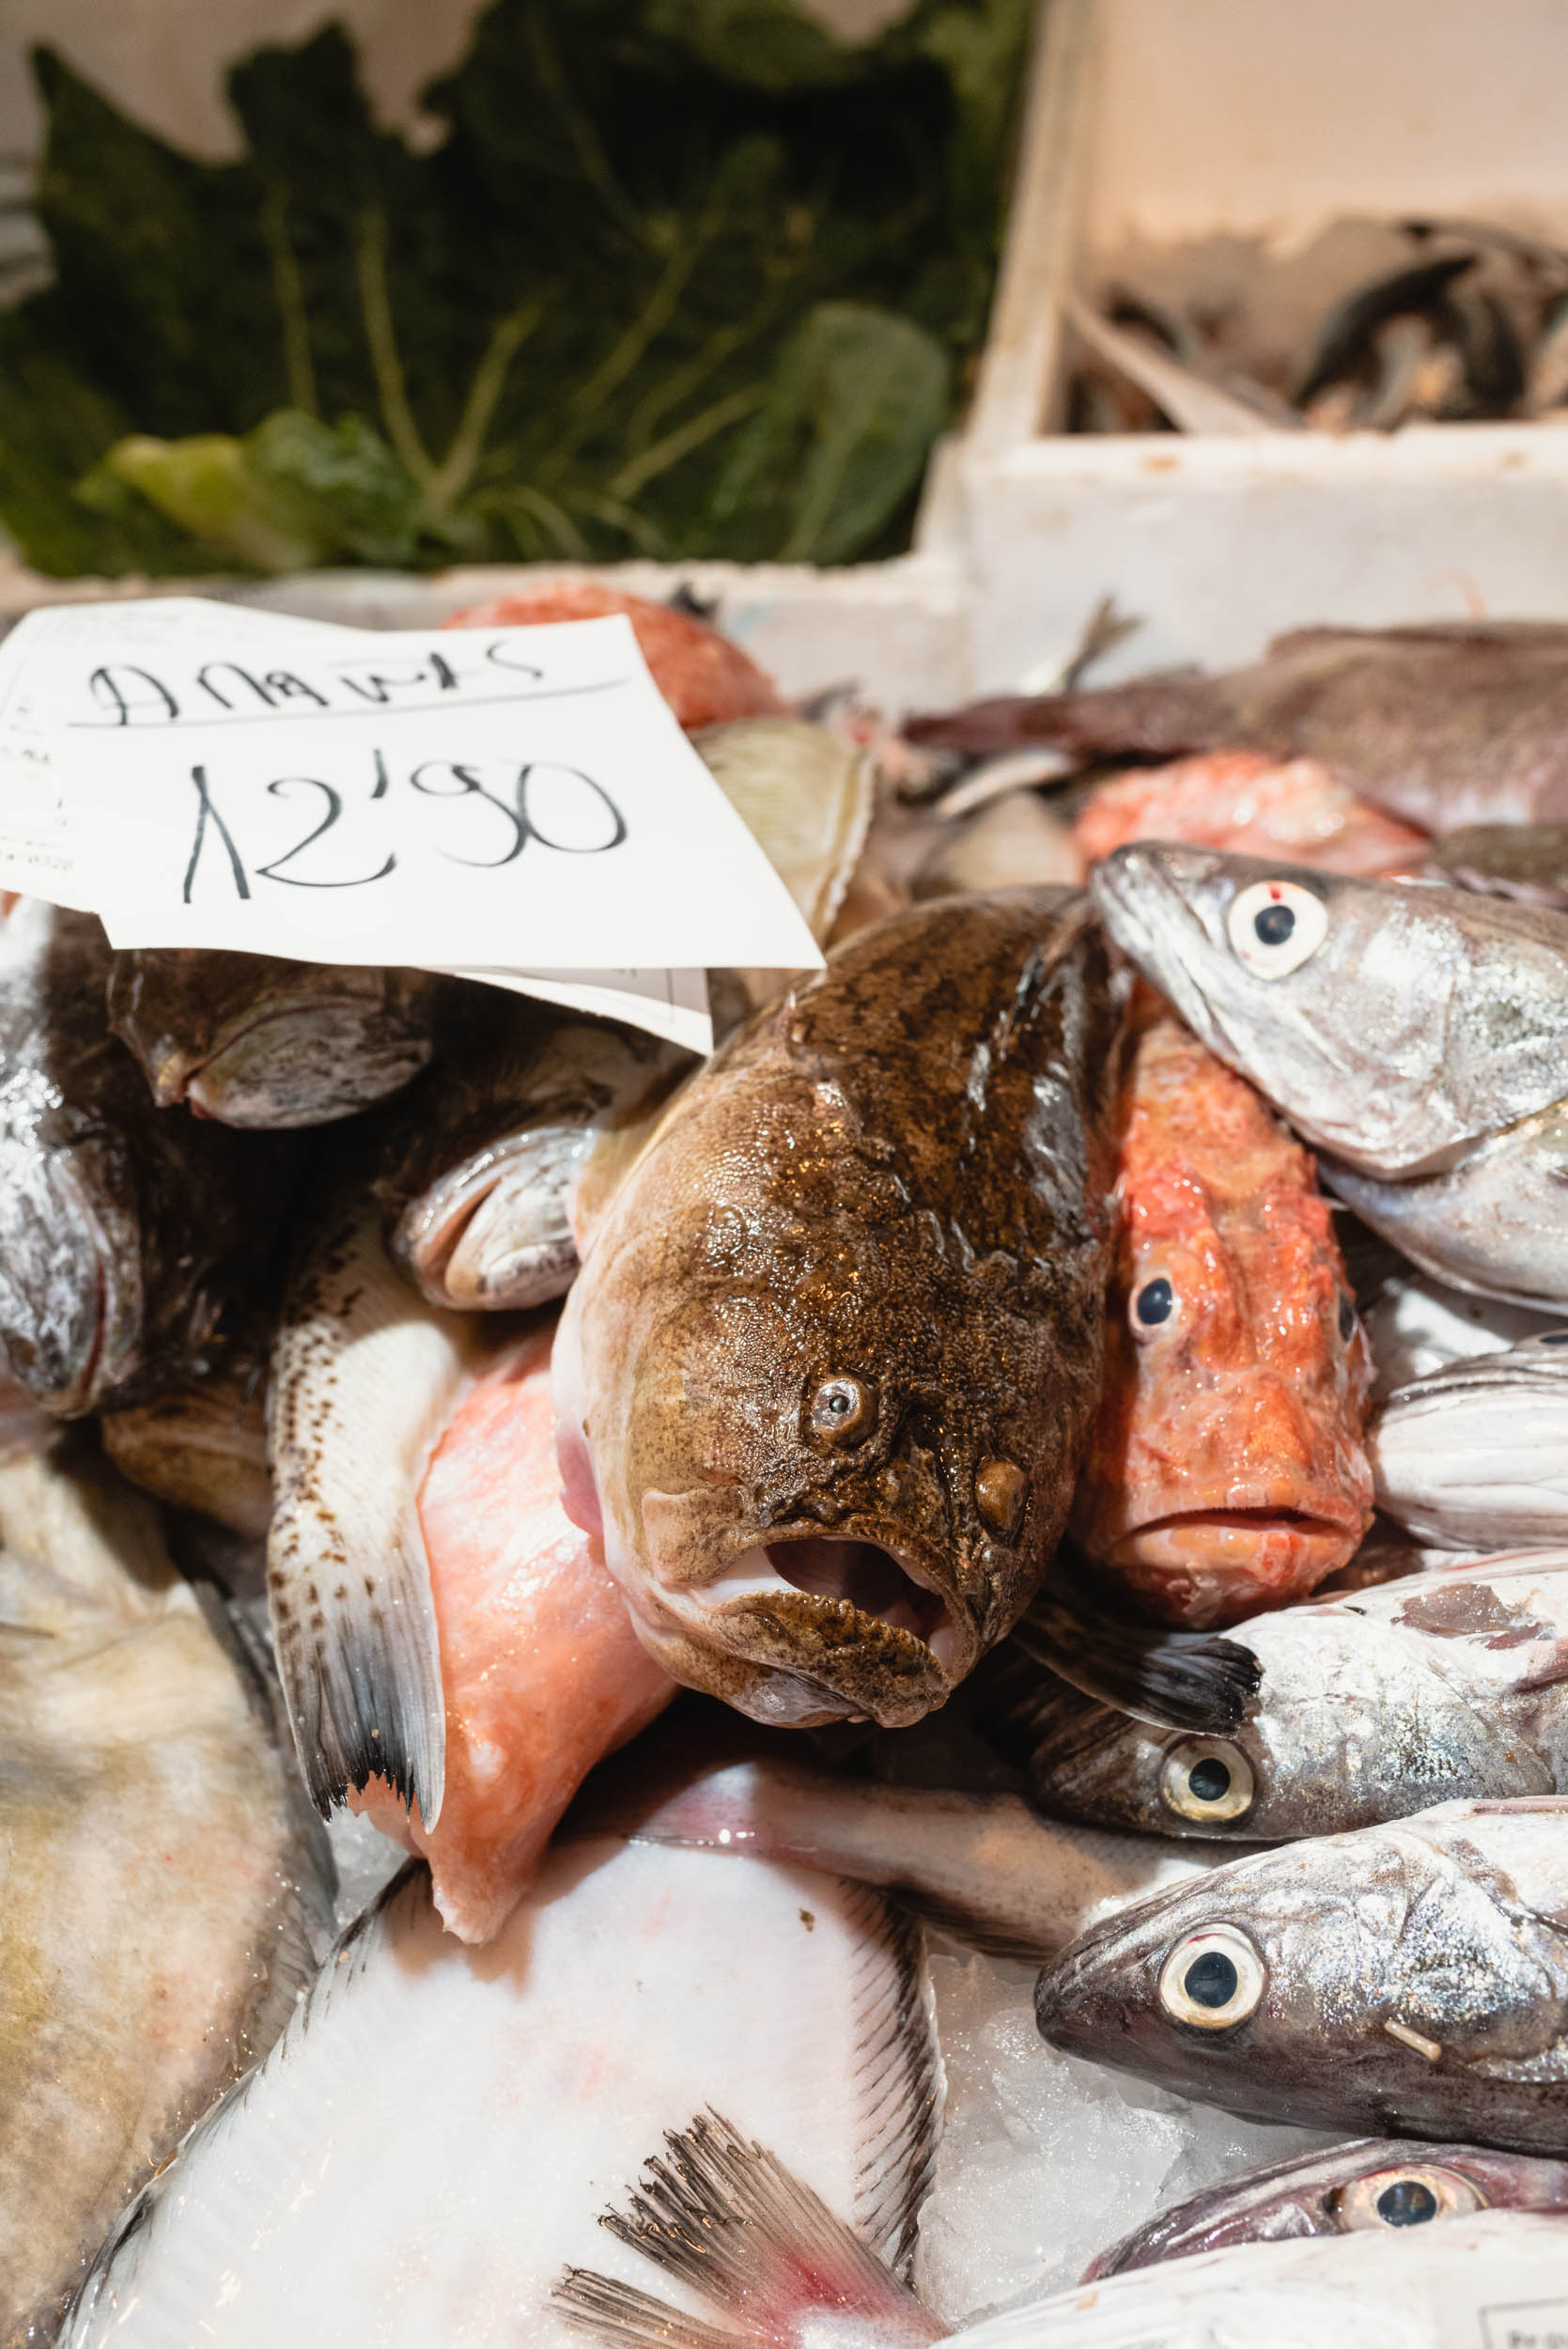 Fish for sale in Sineu, Spain